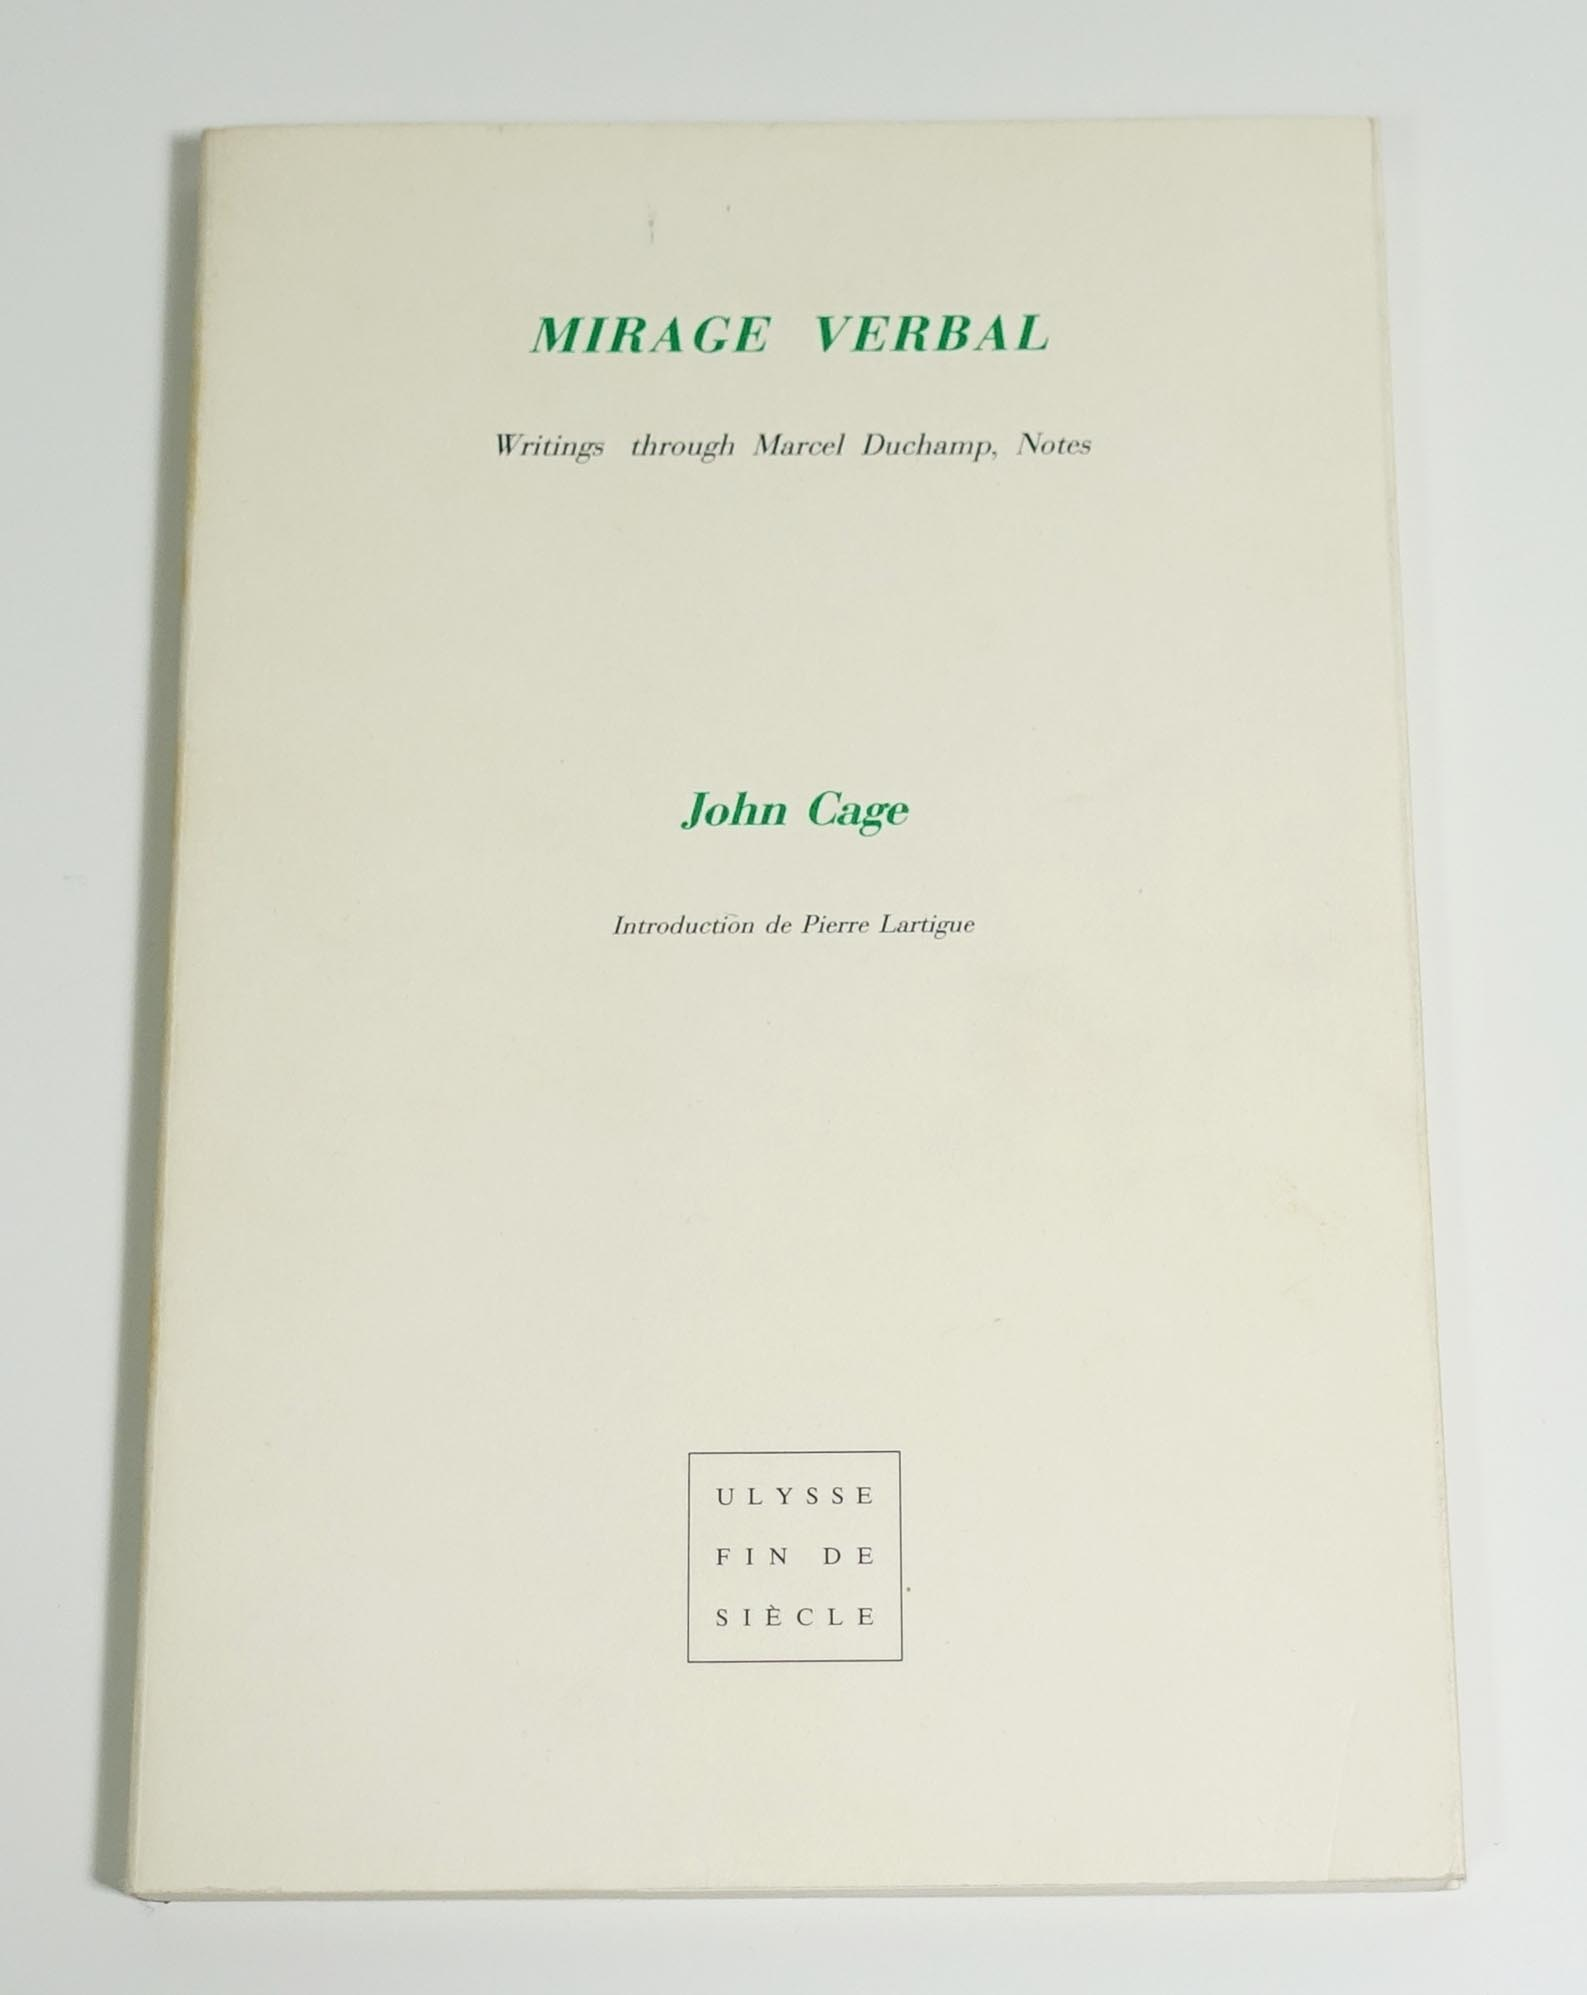 CAGE John Mirage verbal. Writings through Marcel Duchamp, Notes Cahier Ulysse, fin de siècle n°25, 1990. In-8 broché, couverture à rabats, 77 p. L